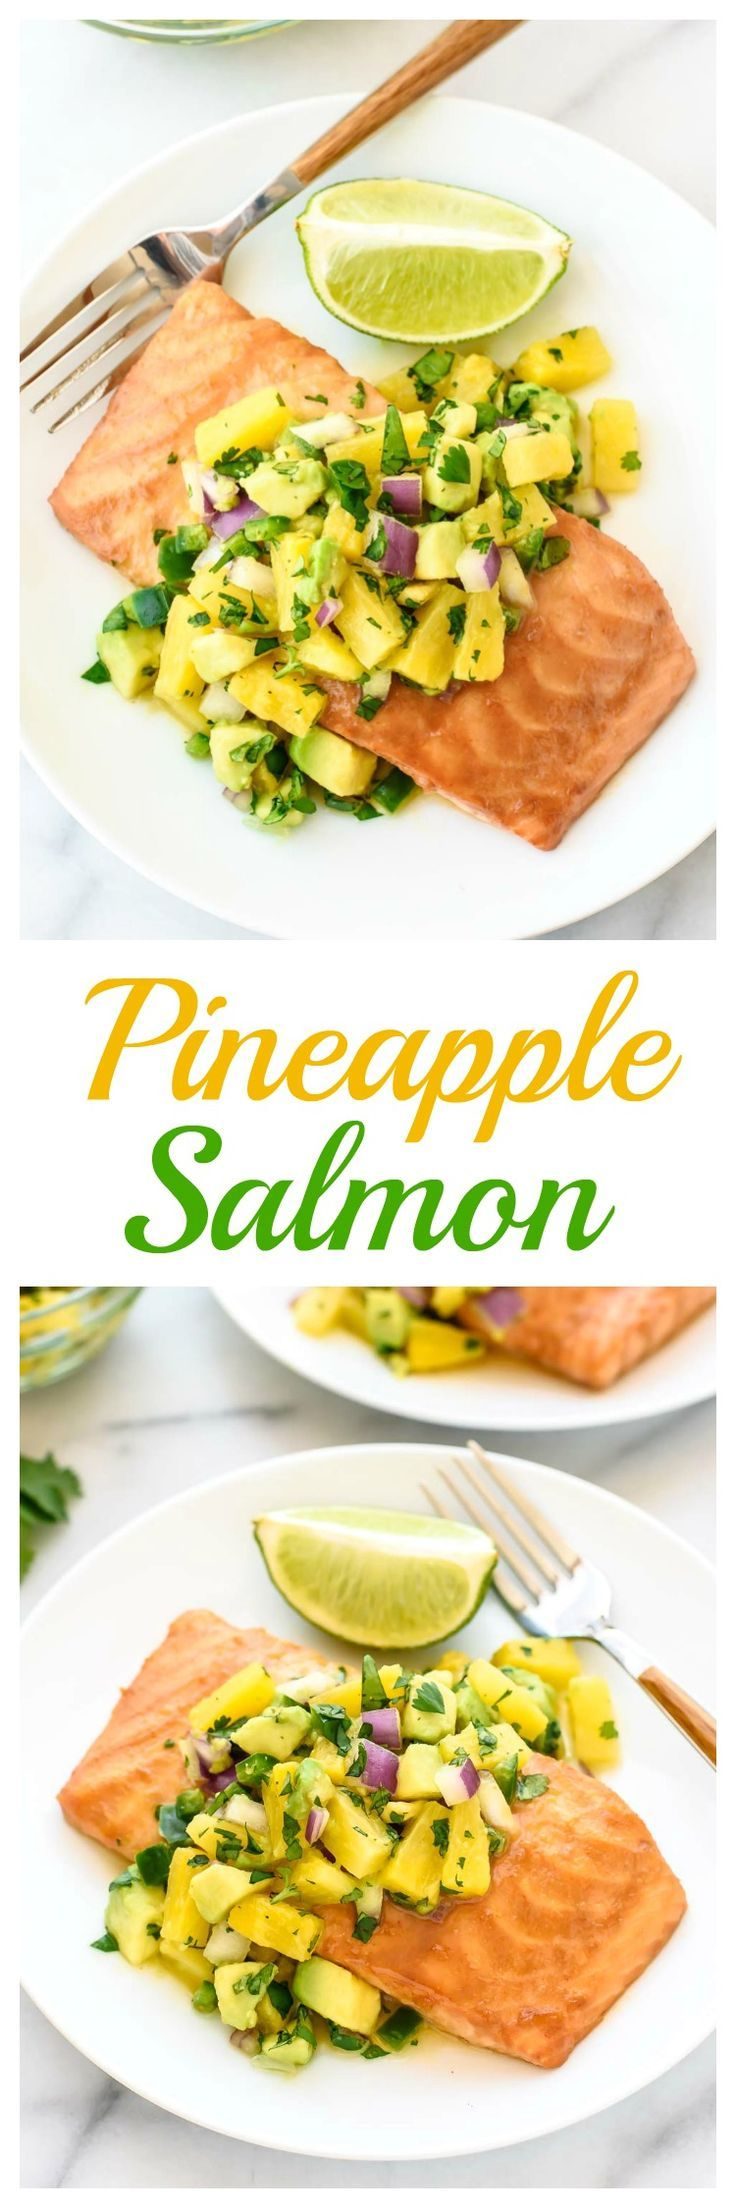 Pineapple Glazed Salmon with Avocado Salsa. Tastes like vacation! Fresh, healthy, and packed with flavor. Canned pineapples make this quick and easy, even for busy weeknights. www.wellplated.com